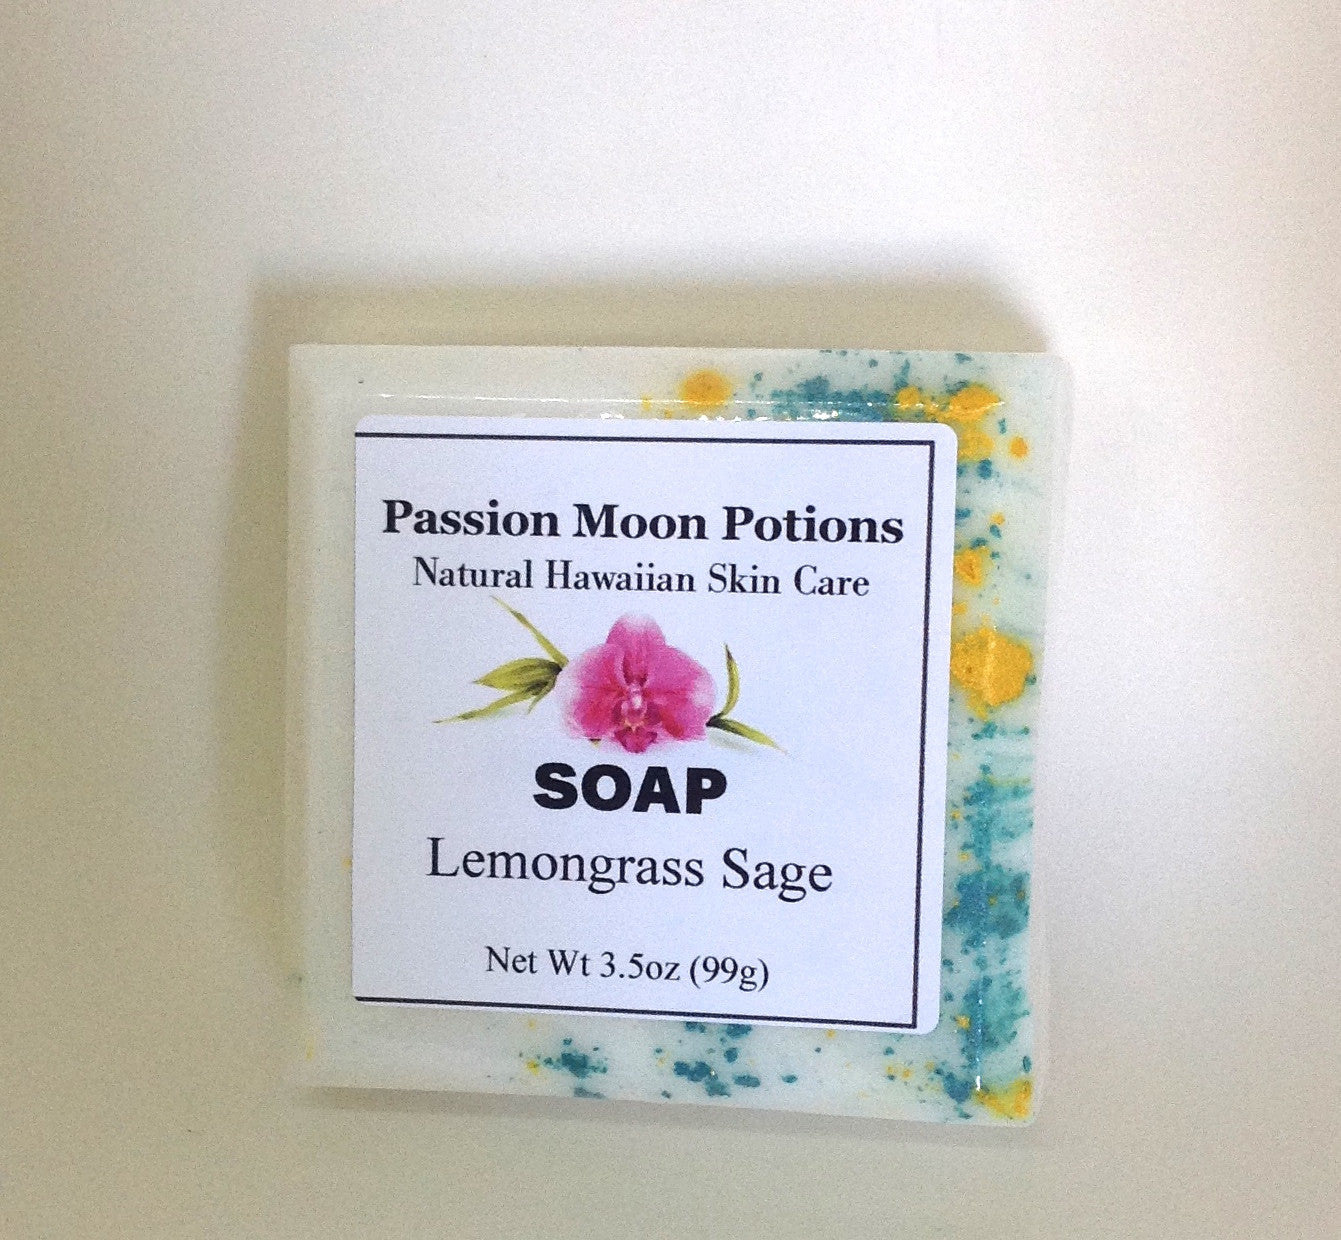 Lemongrass Sage Soap - Passion Moon Potions - 2